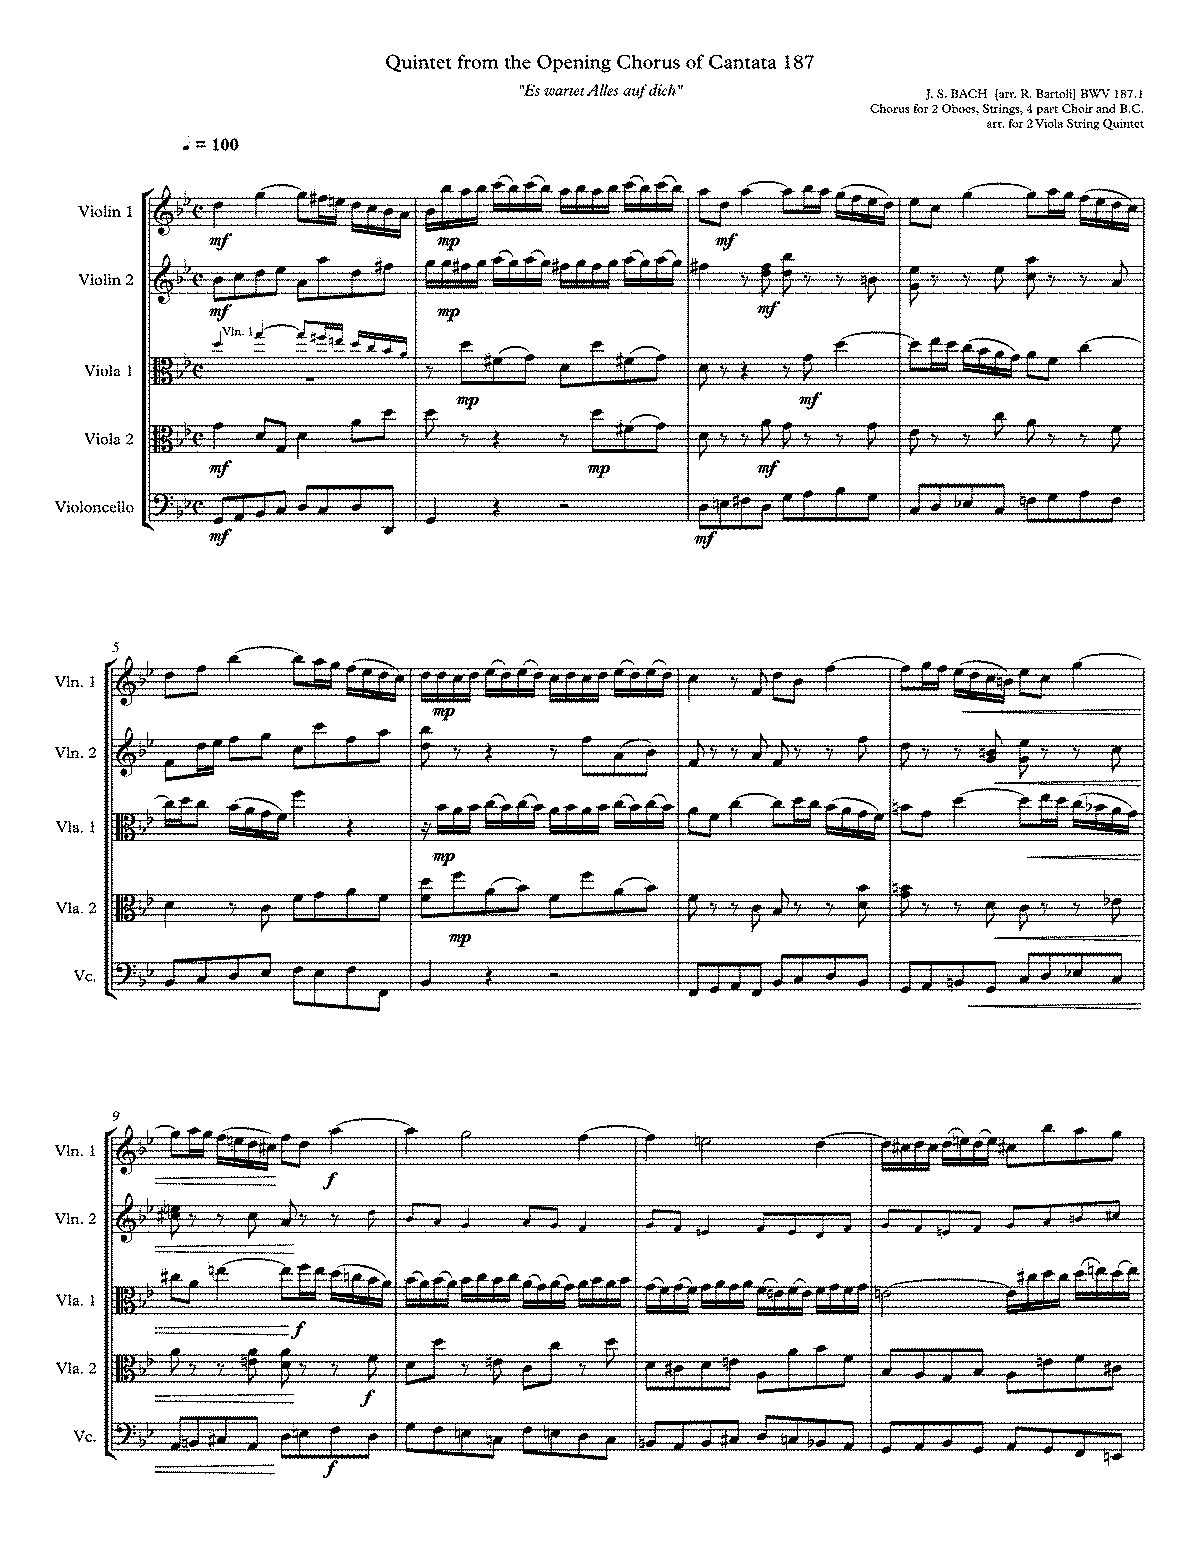 PMLP150098-bach 187.1 S5 2va RUSS done - Score and parts.pdf